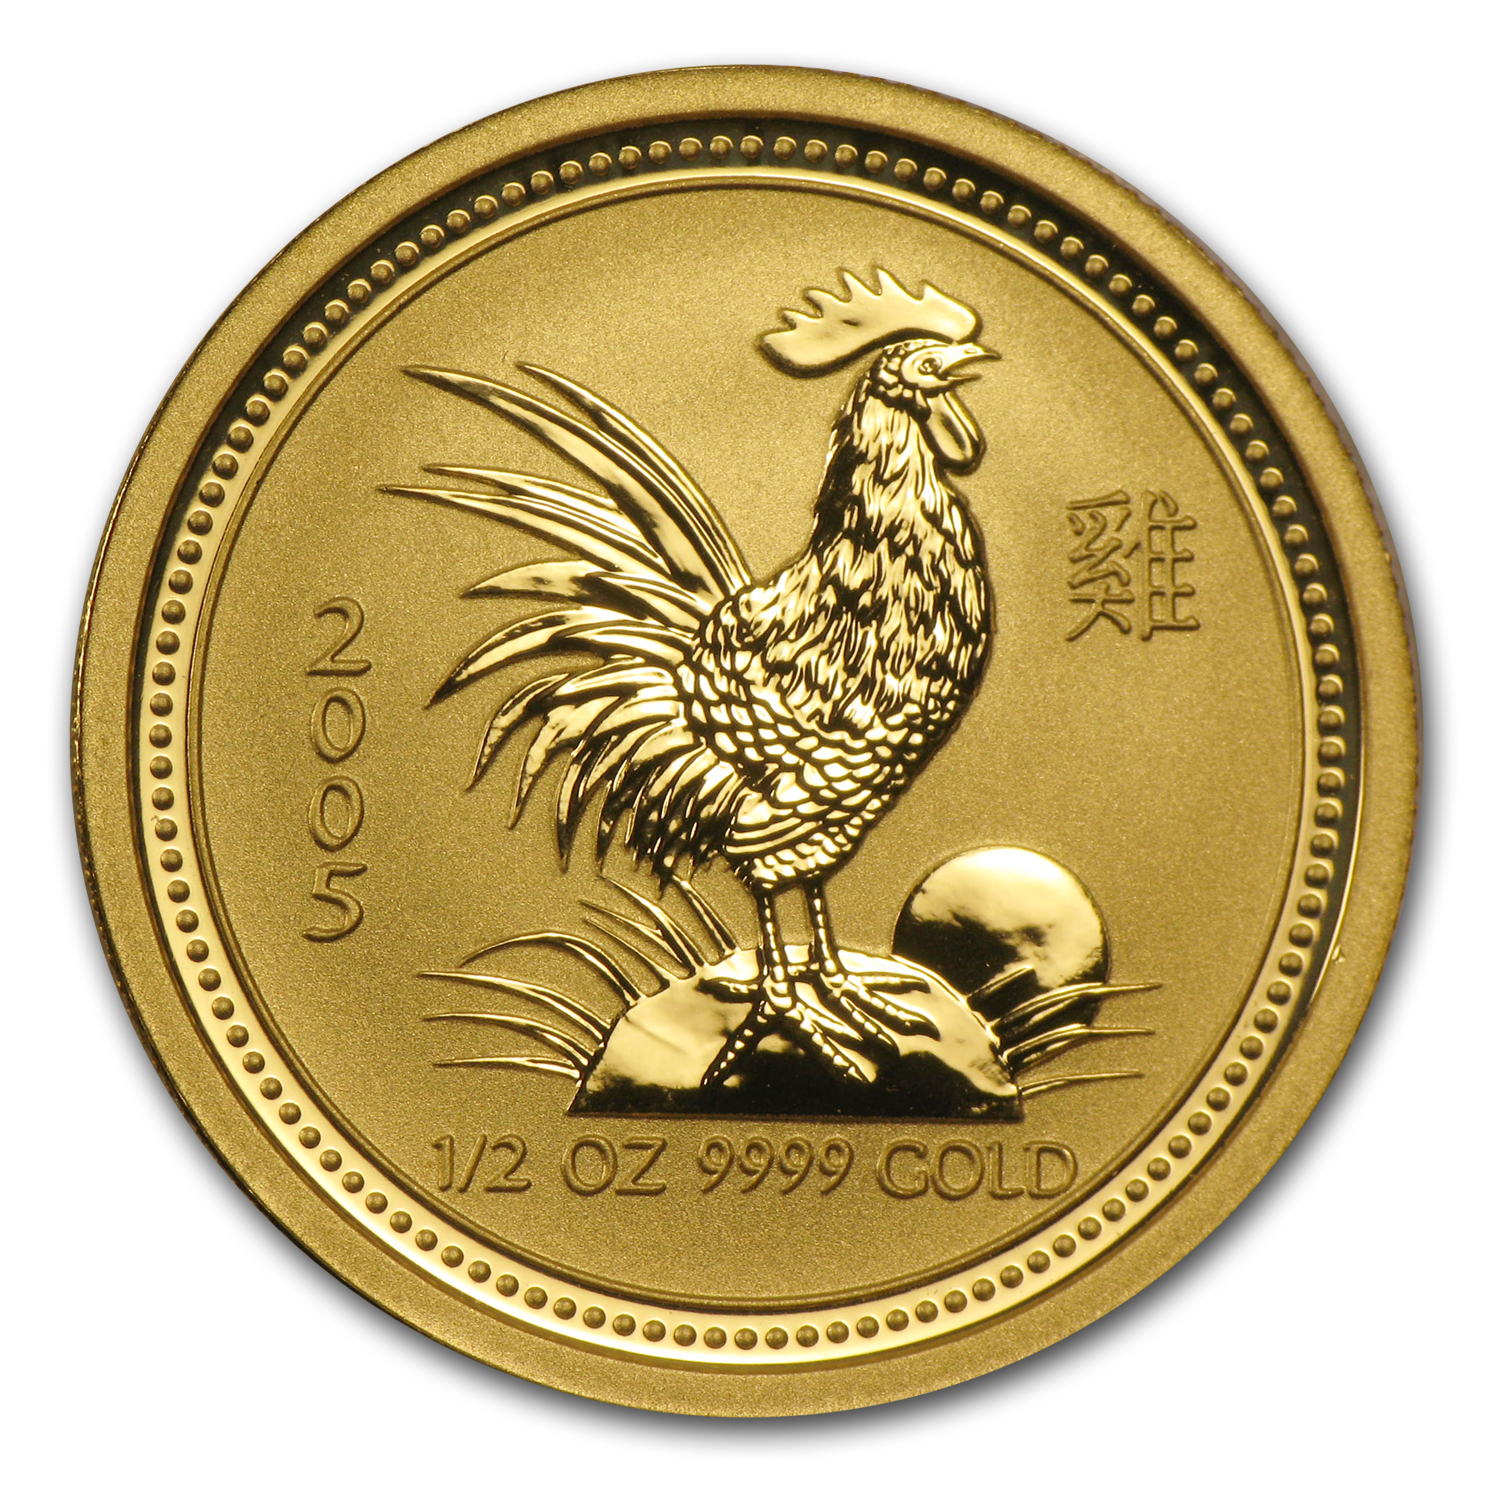 2005 1/2 oz Gold Year of the Rooster Lunar Coin (Series I)